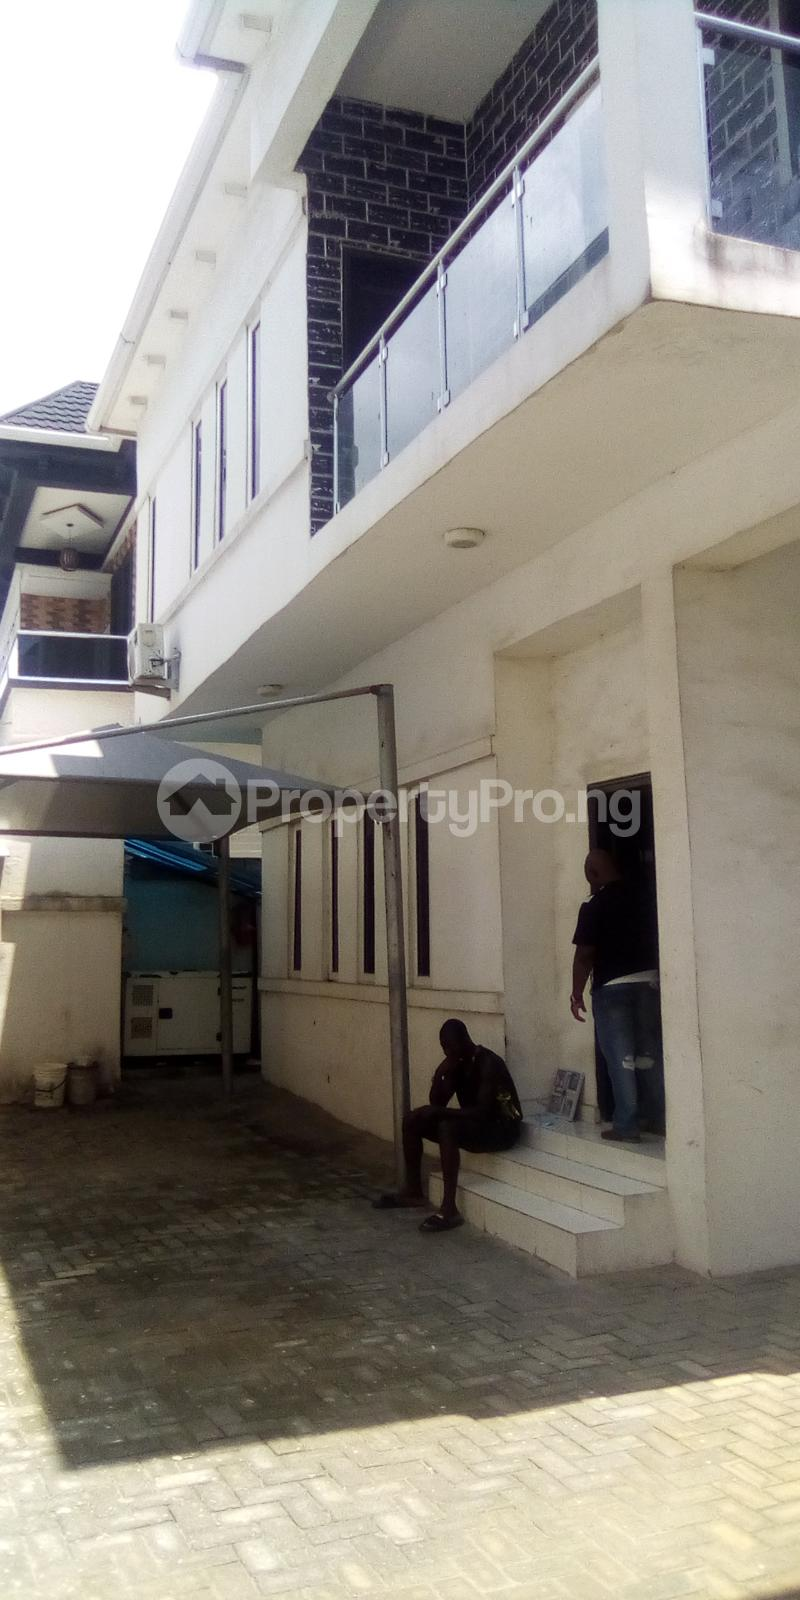 5 bedroom Detached Duplex House for rent 5 bedroom detached house on amjor commercial axis of Chevy View estate by Chevron,lekki. chevron Lekki Lagos - 0